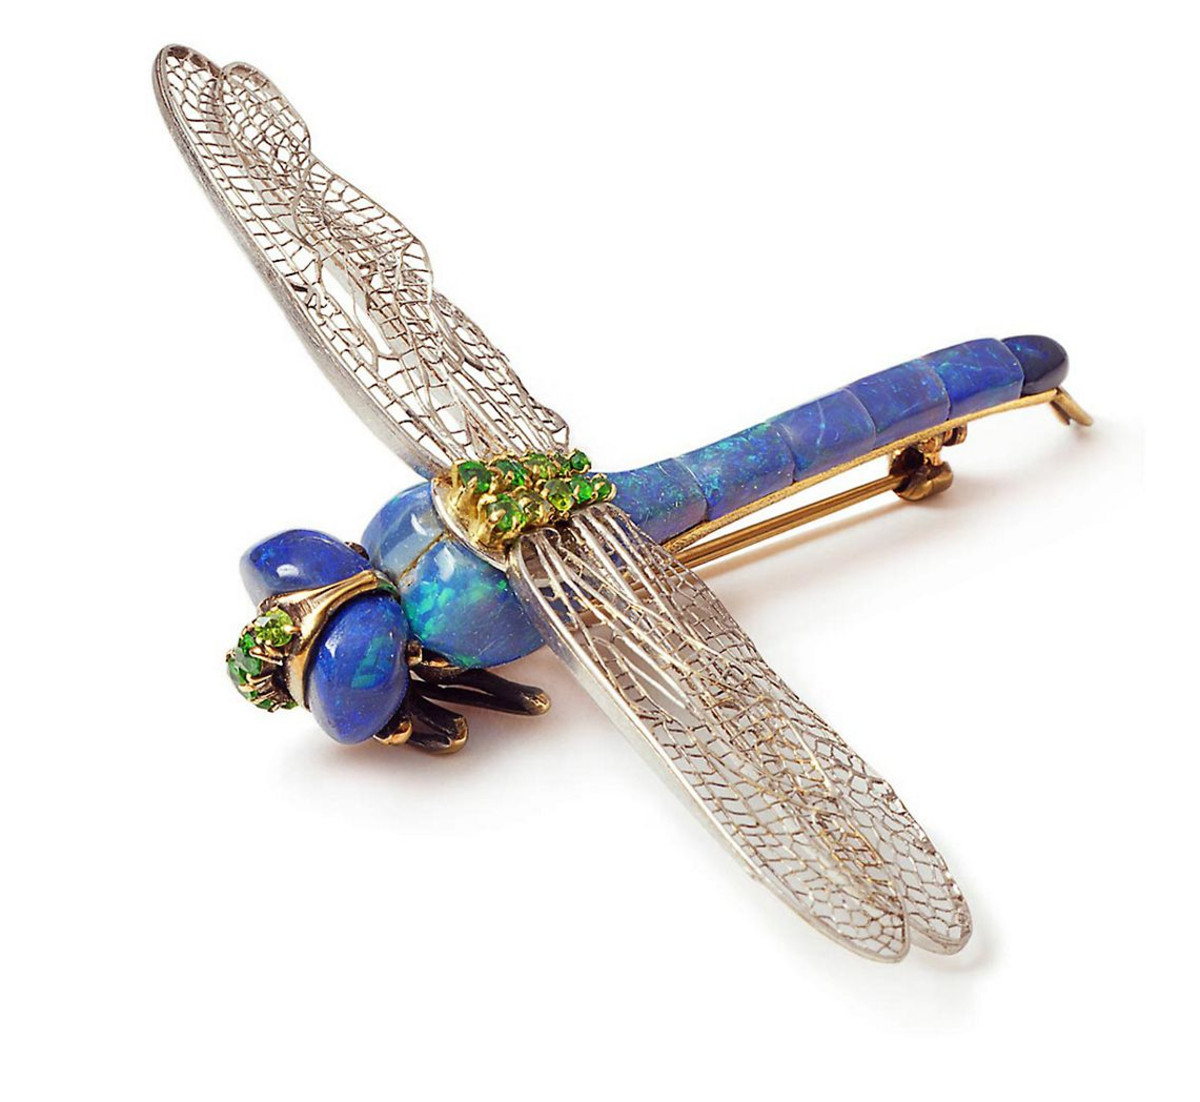 Black opals, demantoid garnets and platinum take flight in this dragonfly brooch by Louis Comfort Tiffany.